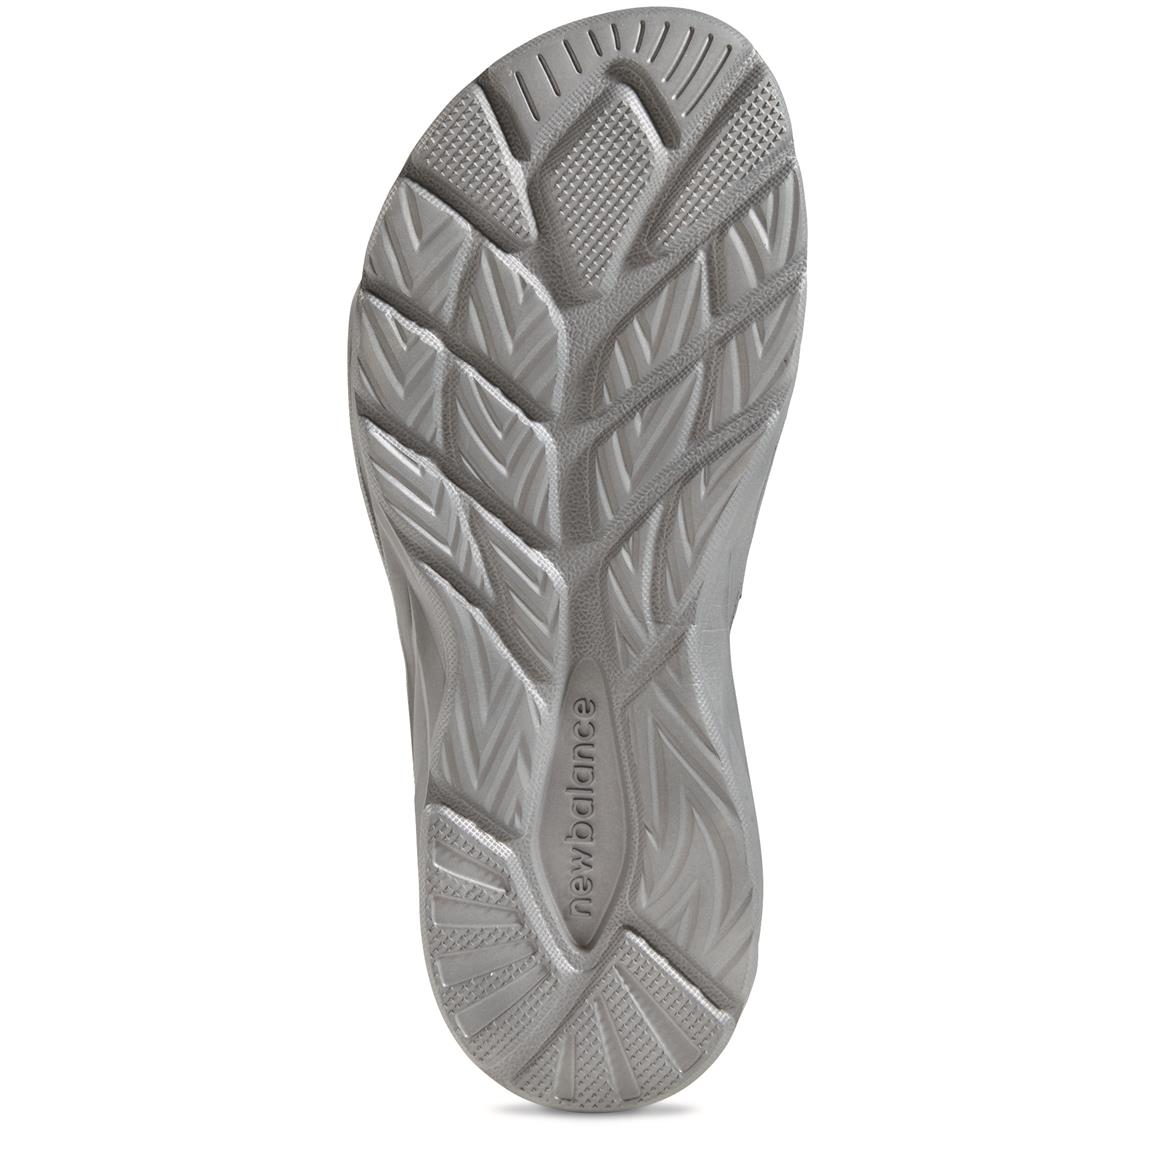 Outsole with textured detail at toes and heel for extra traction